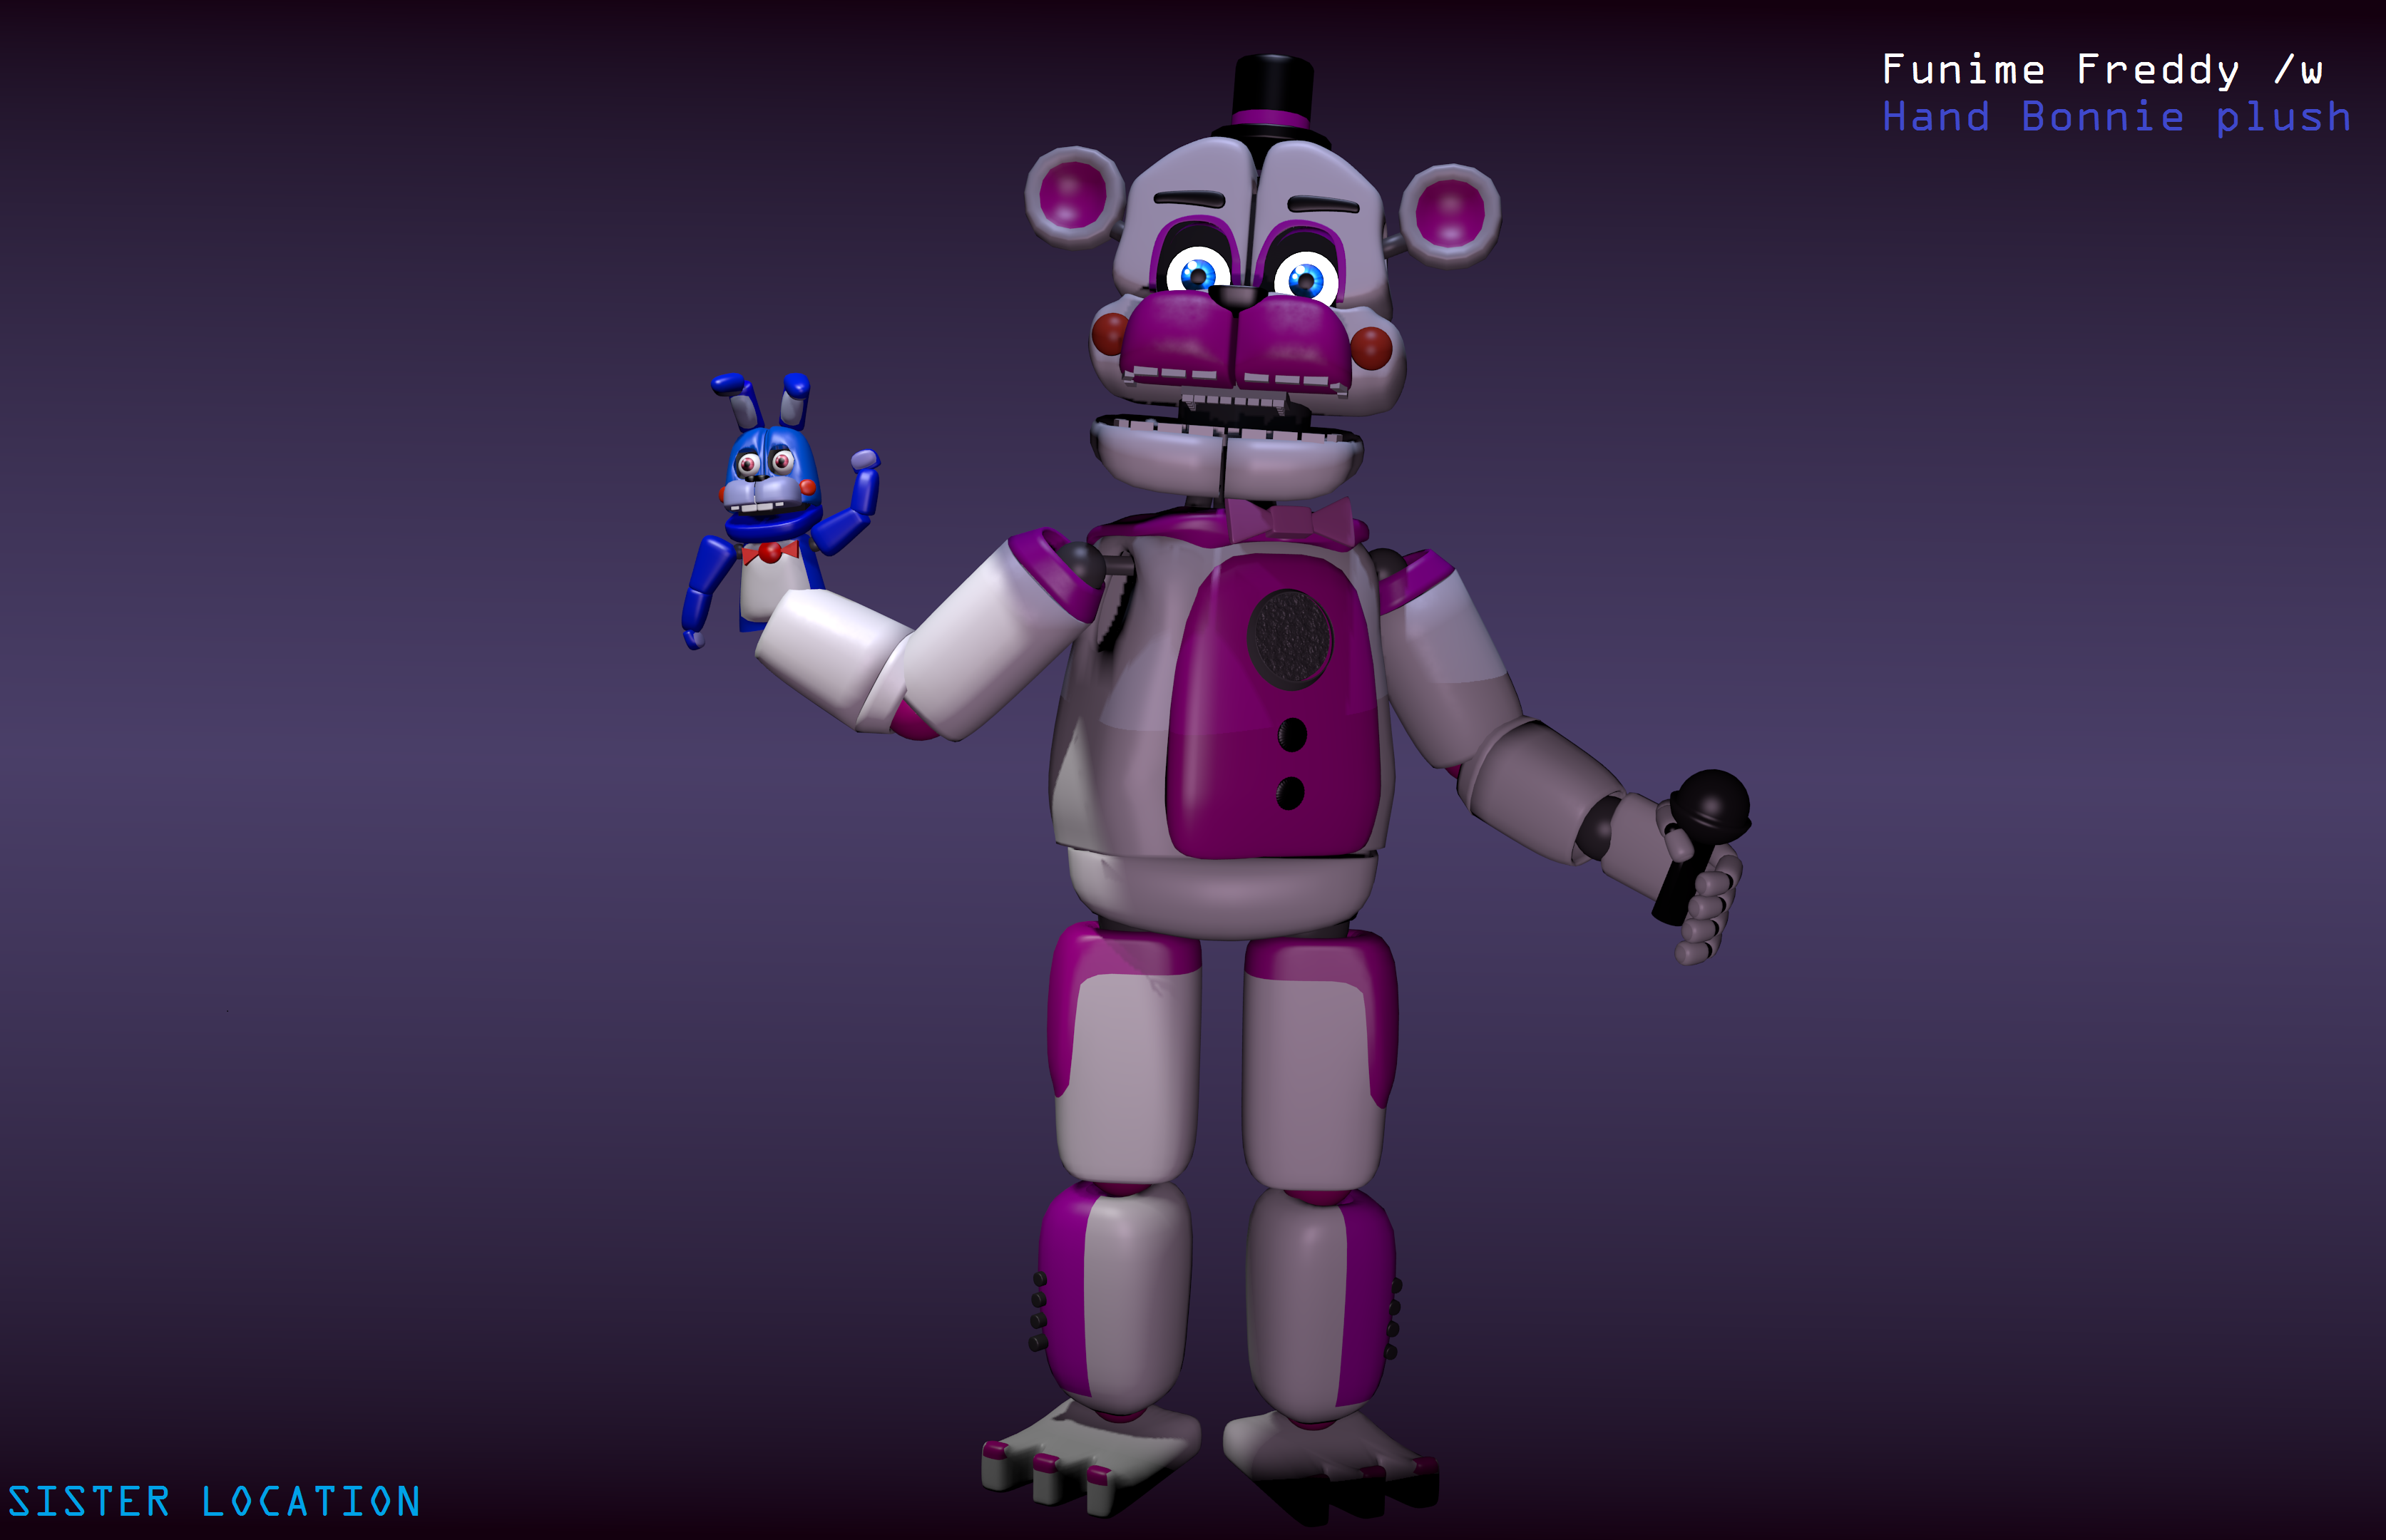 Mmd Funtime Freddy: Funtime Freddy By Timimouse15 On DeviantArt